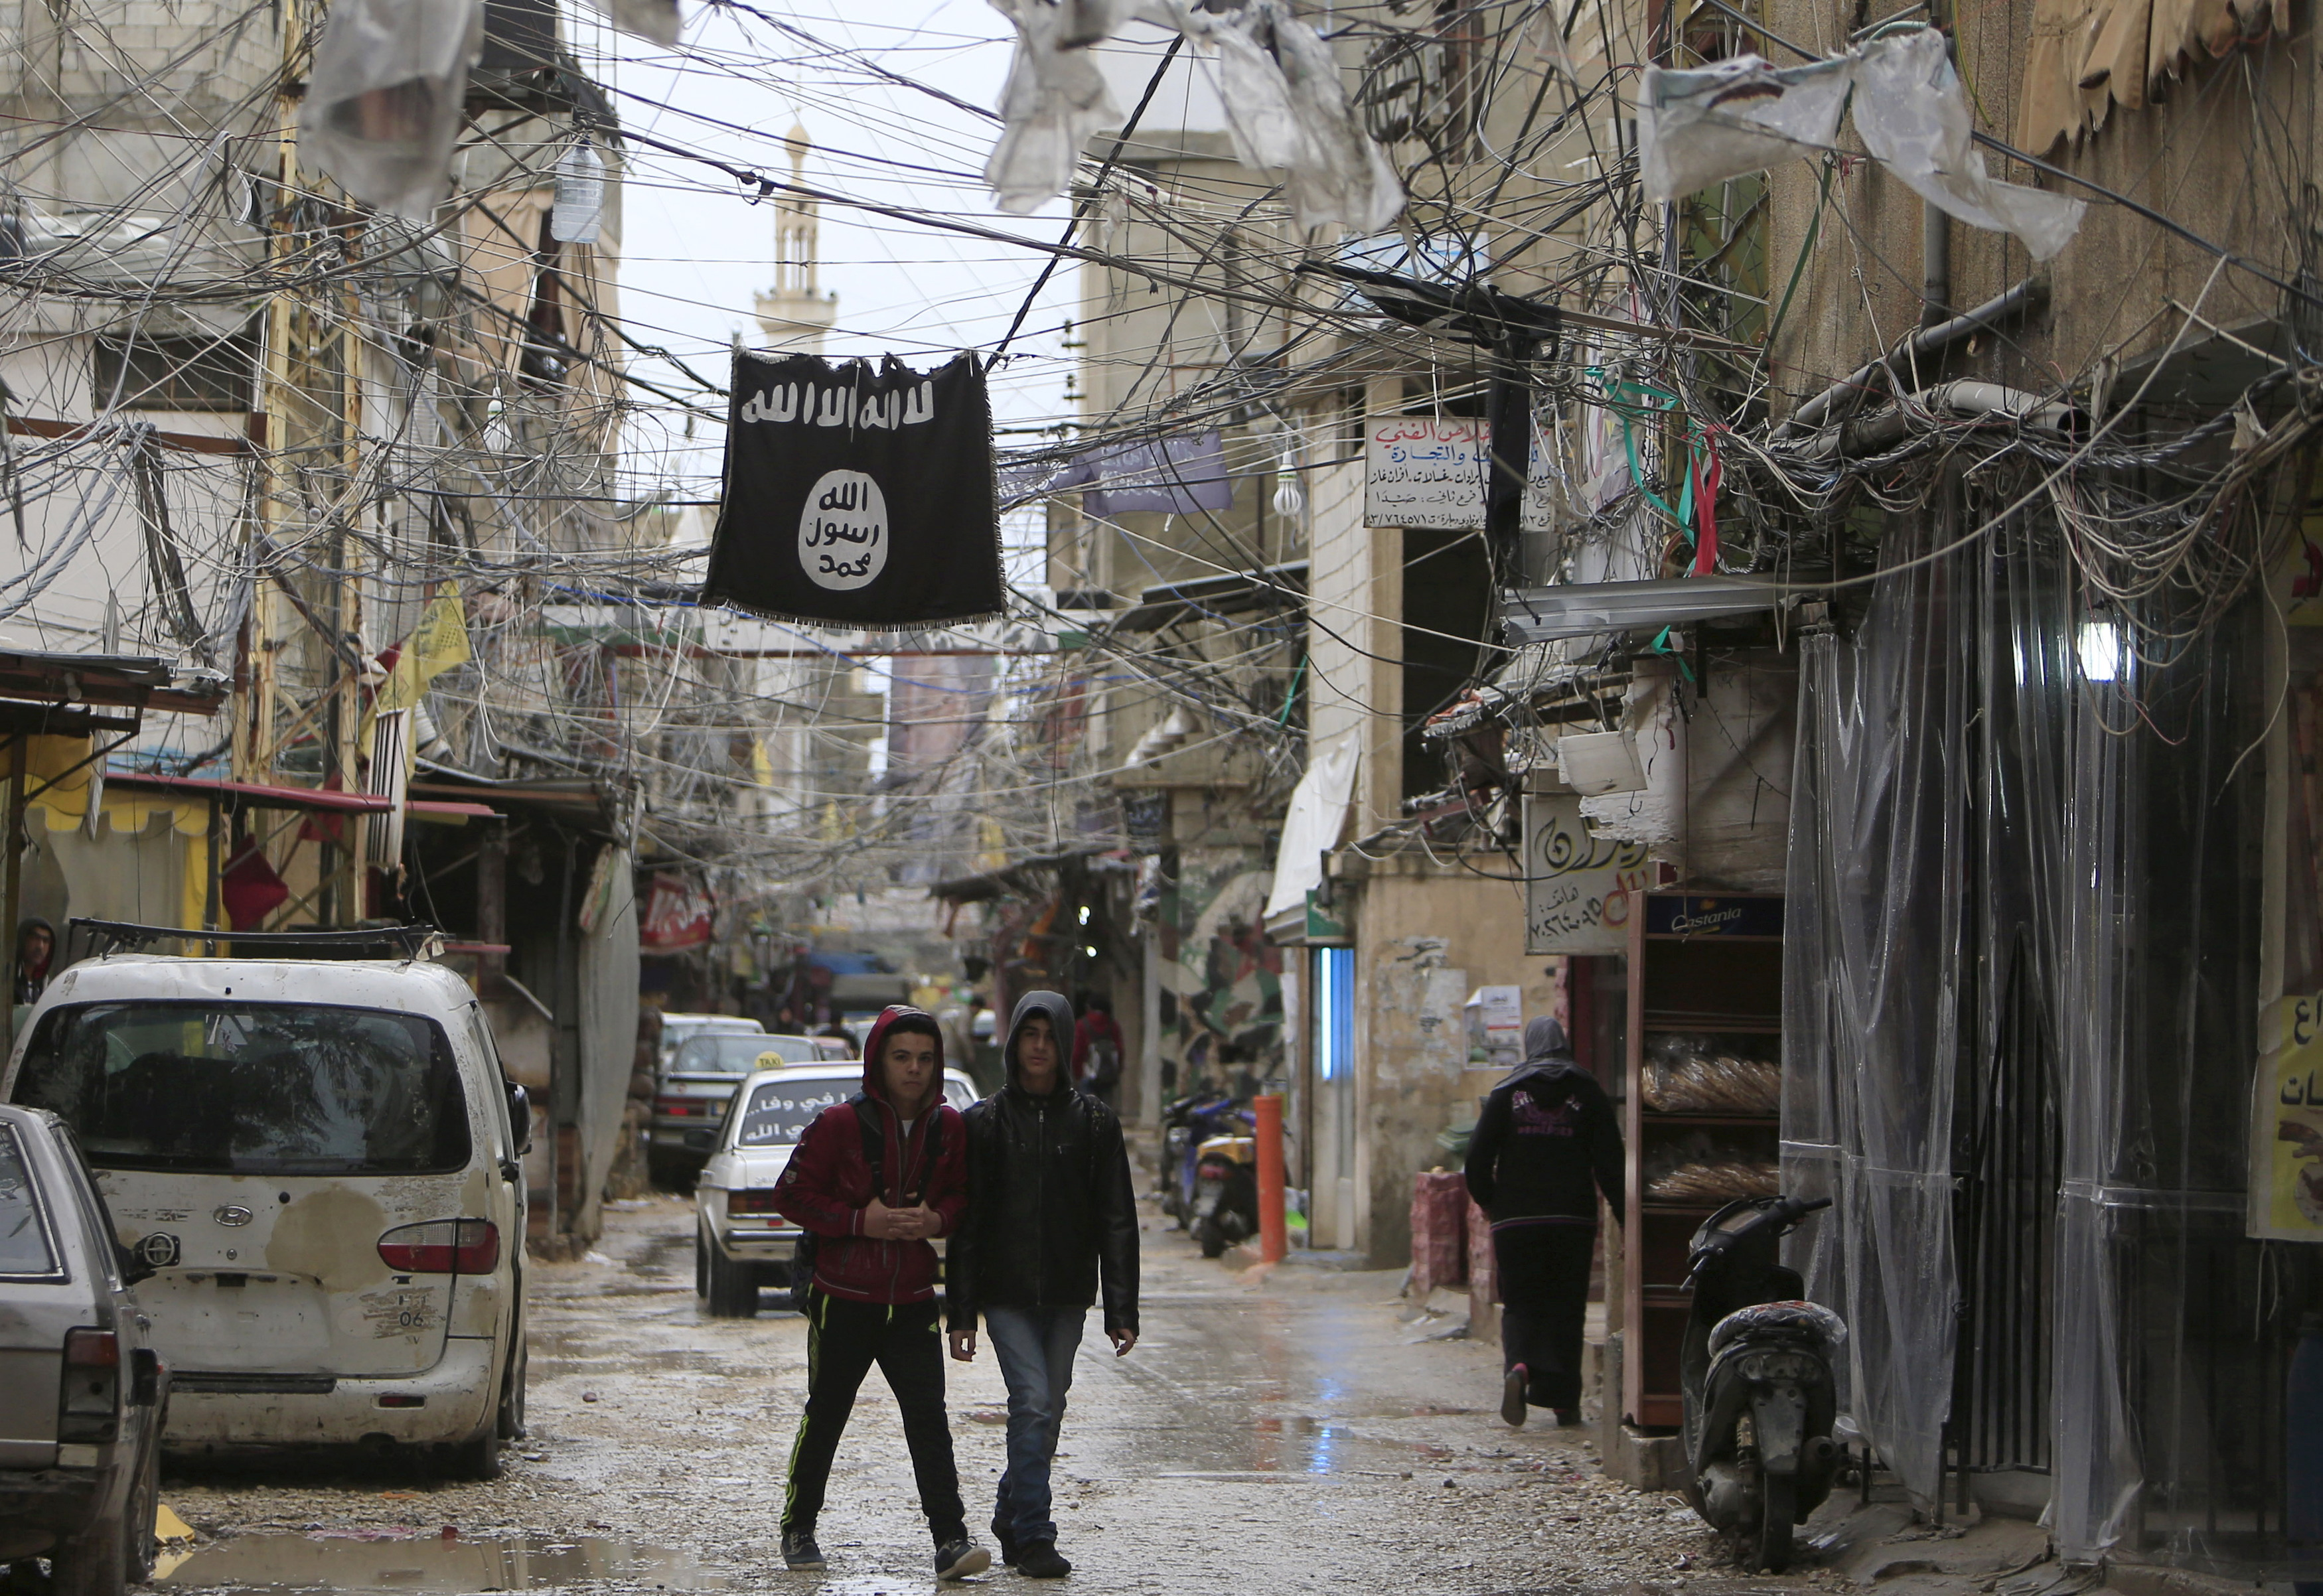 Youth walk under an Islamic State flag in Ain al-Hilweh Palestinian refugee camp, near the port-city of Sidon